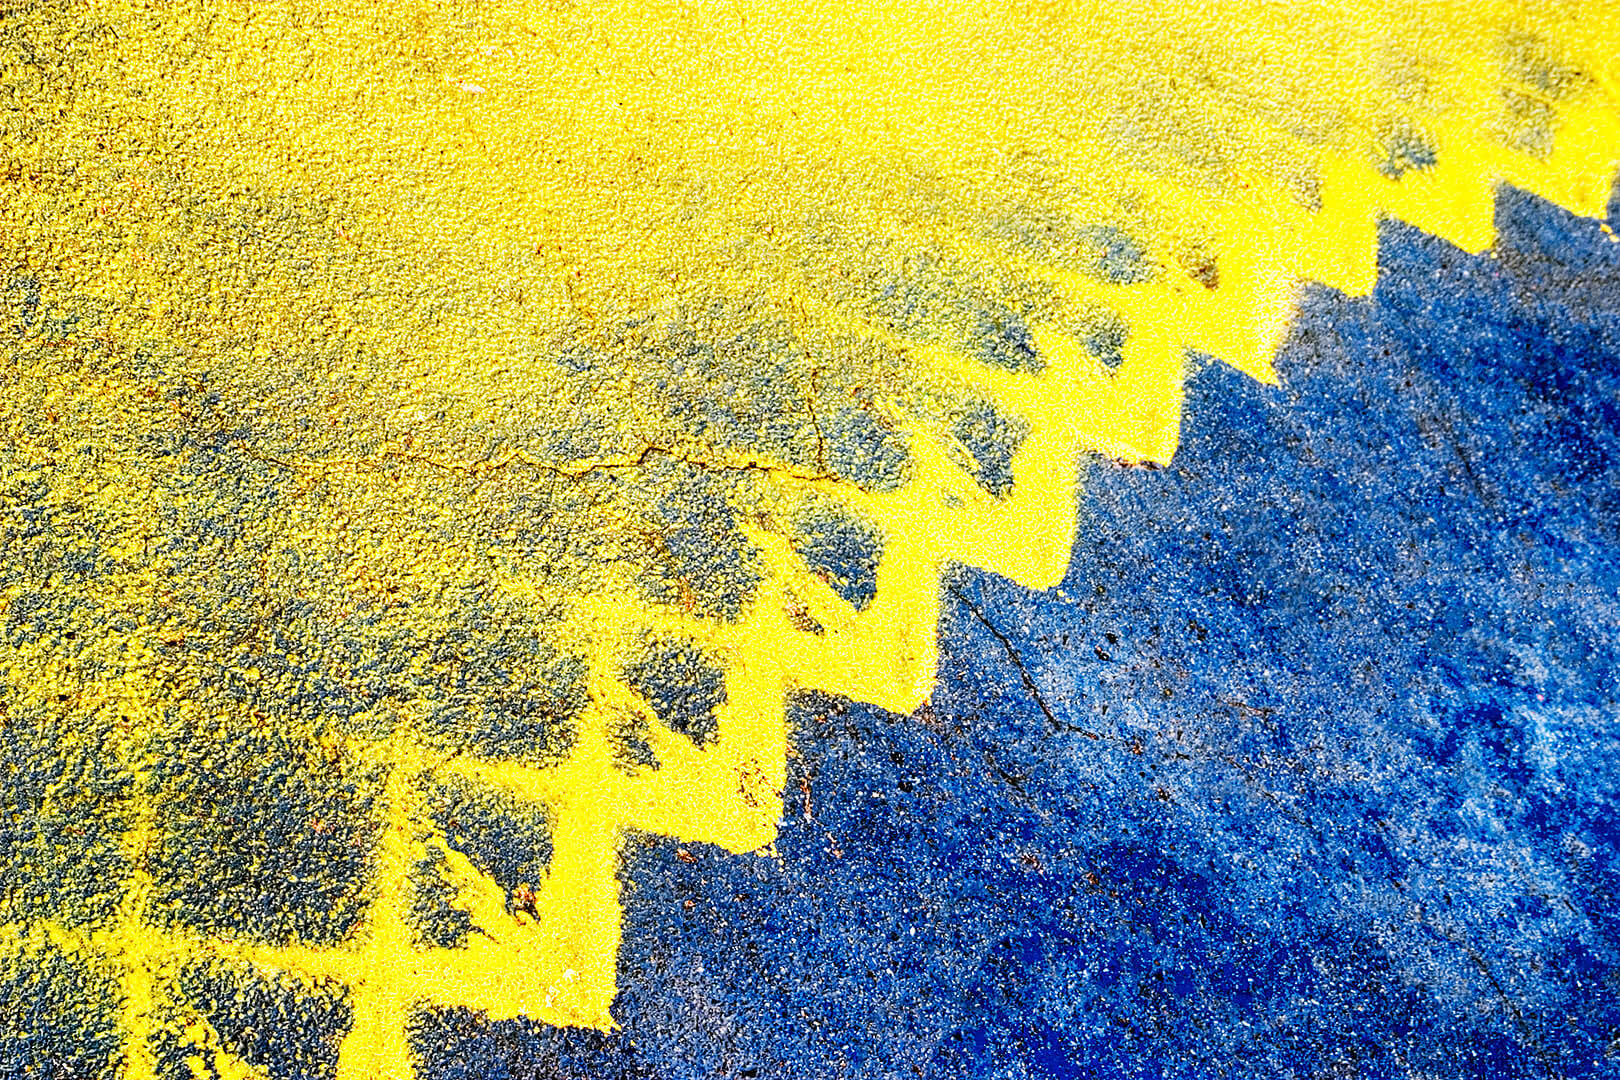 Yellow and Blue Street Markings